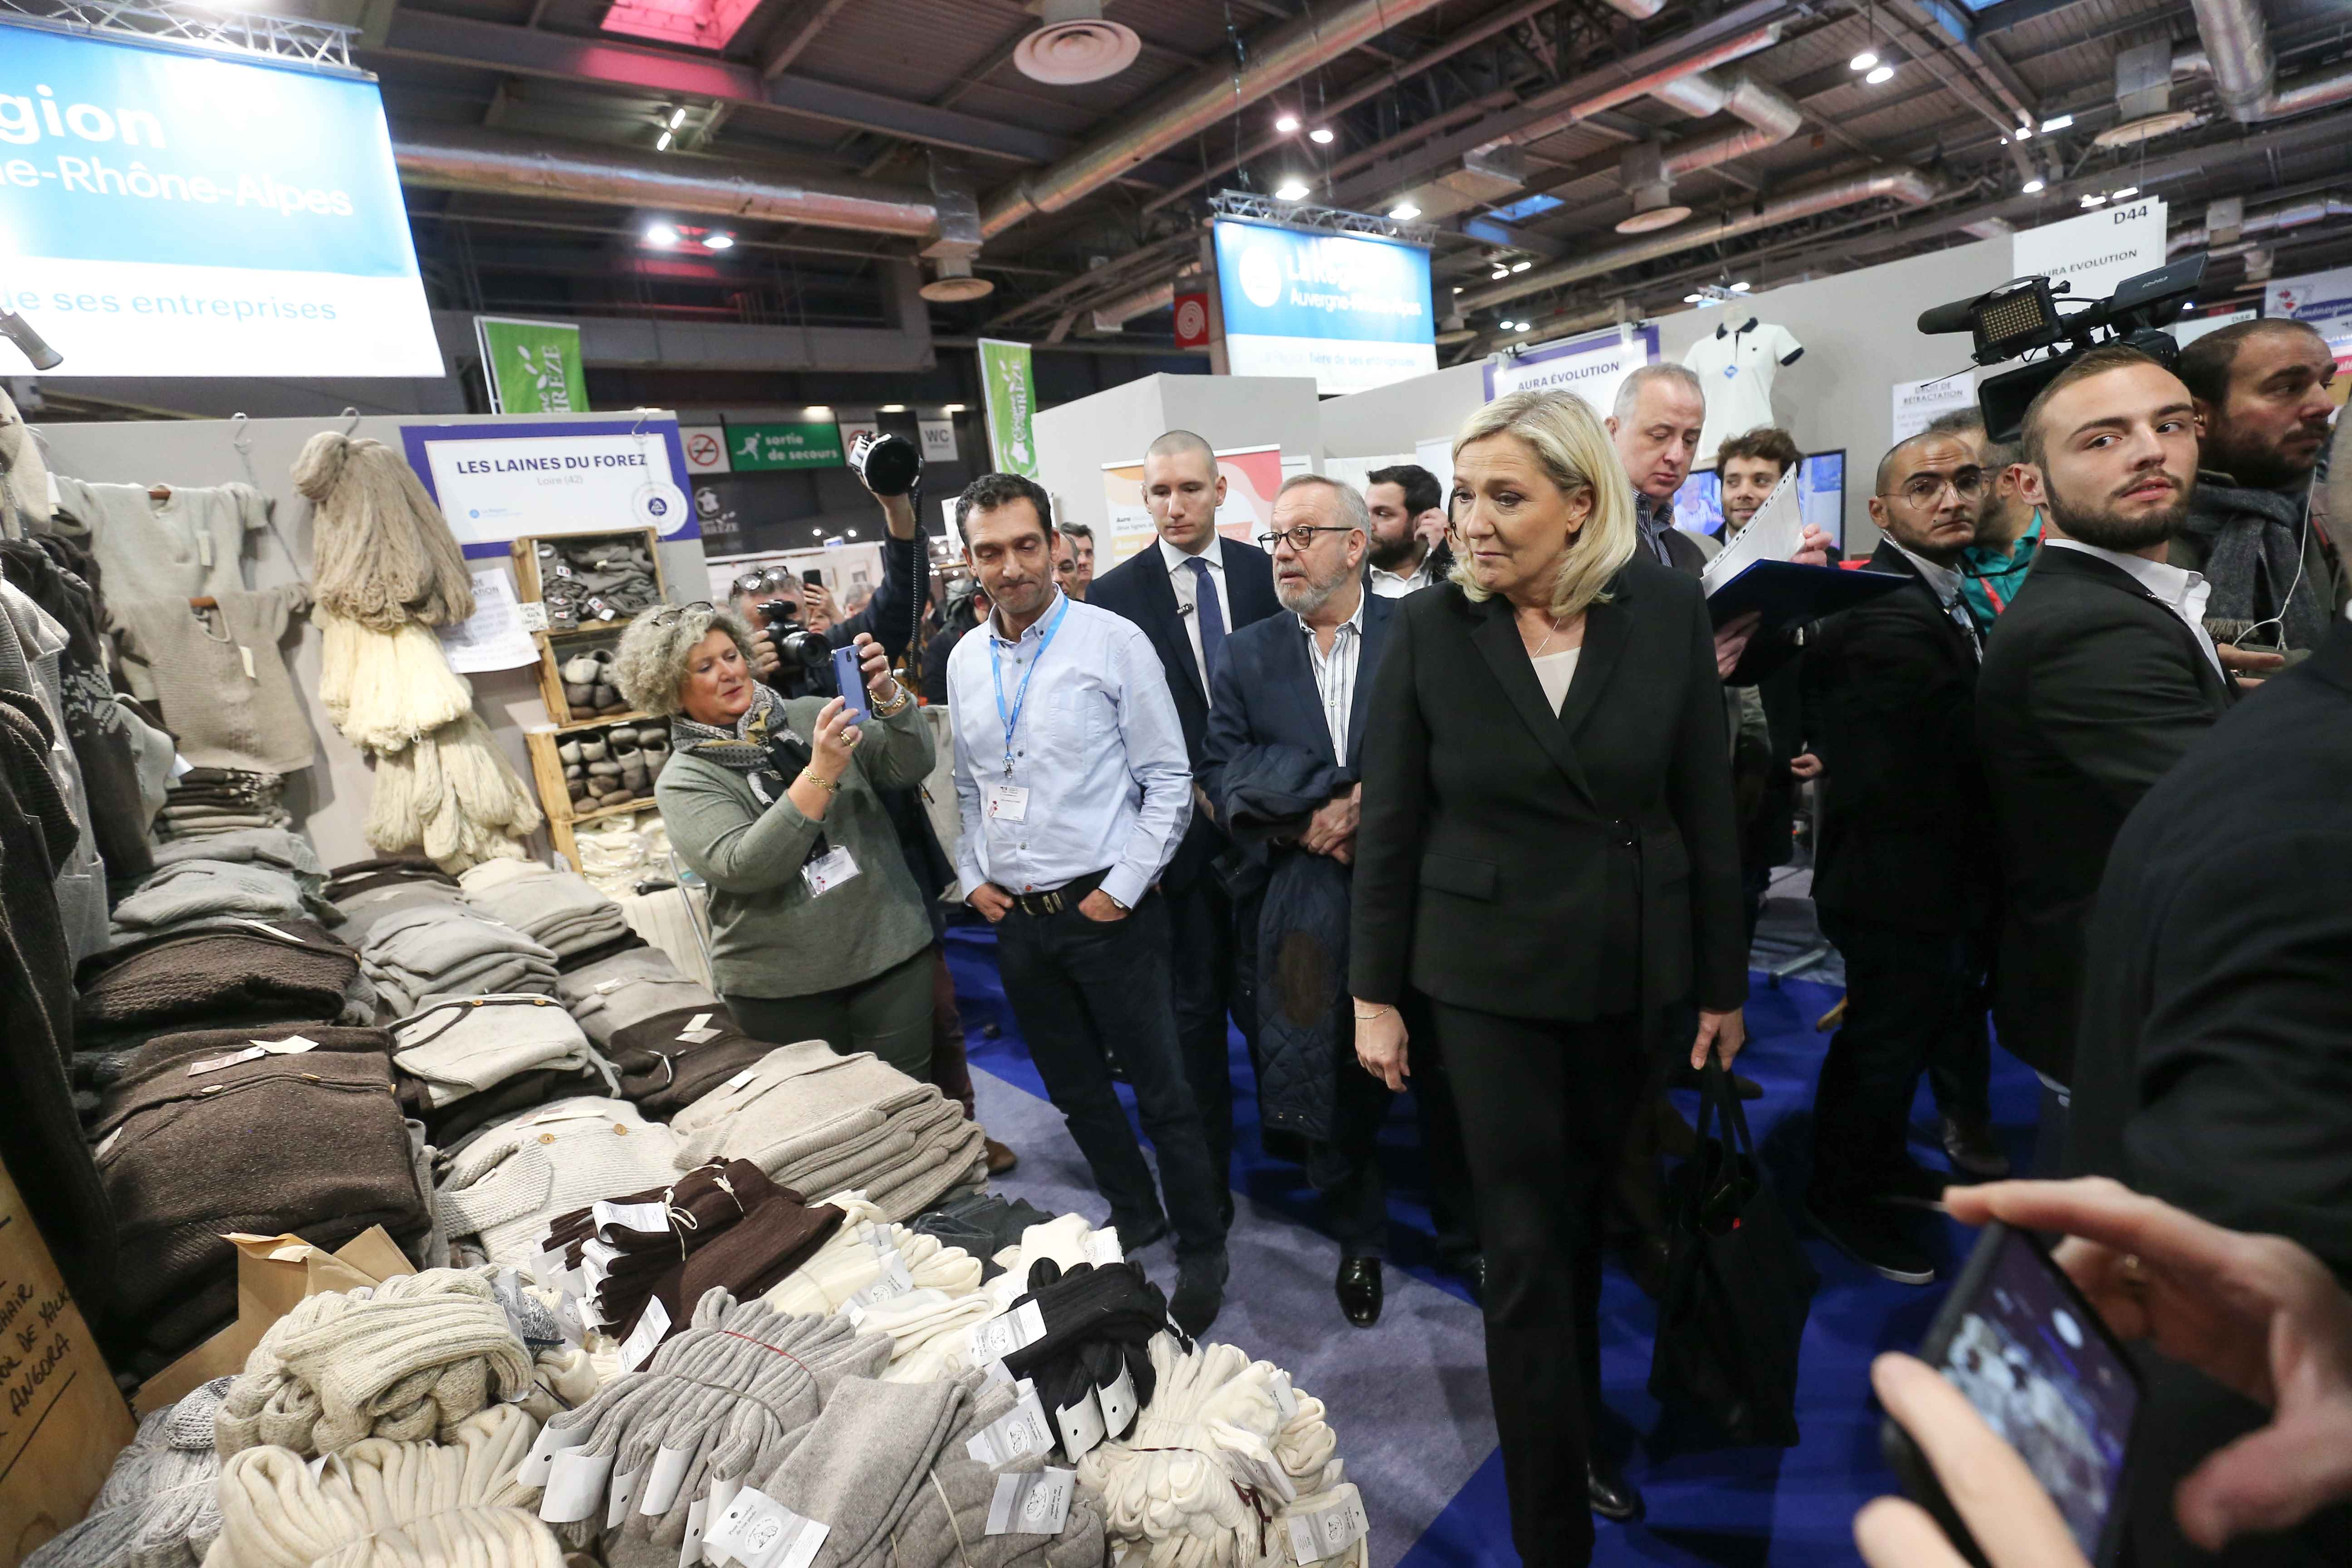 French far-right Rassemblement National (RN) party's president and MP Marine Le Pen (C) visits the Made in France Fair, on November 9, 2019, at the Porte de Versailles, in Paris.